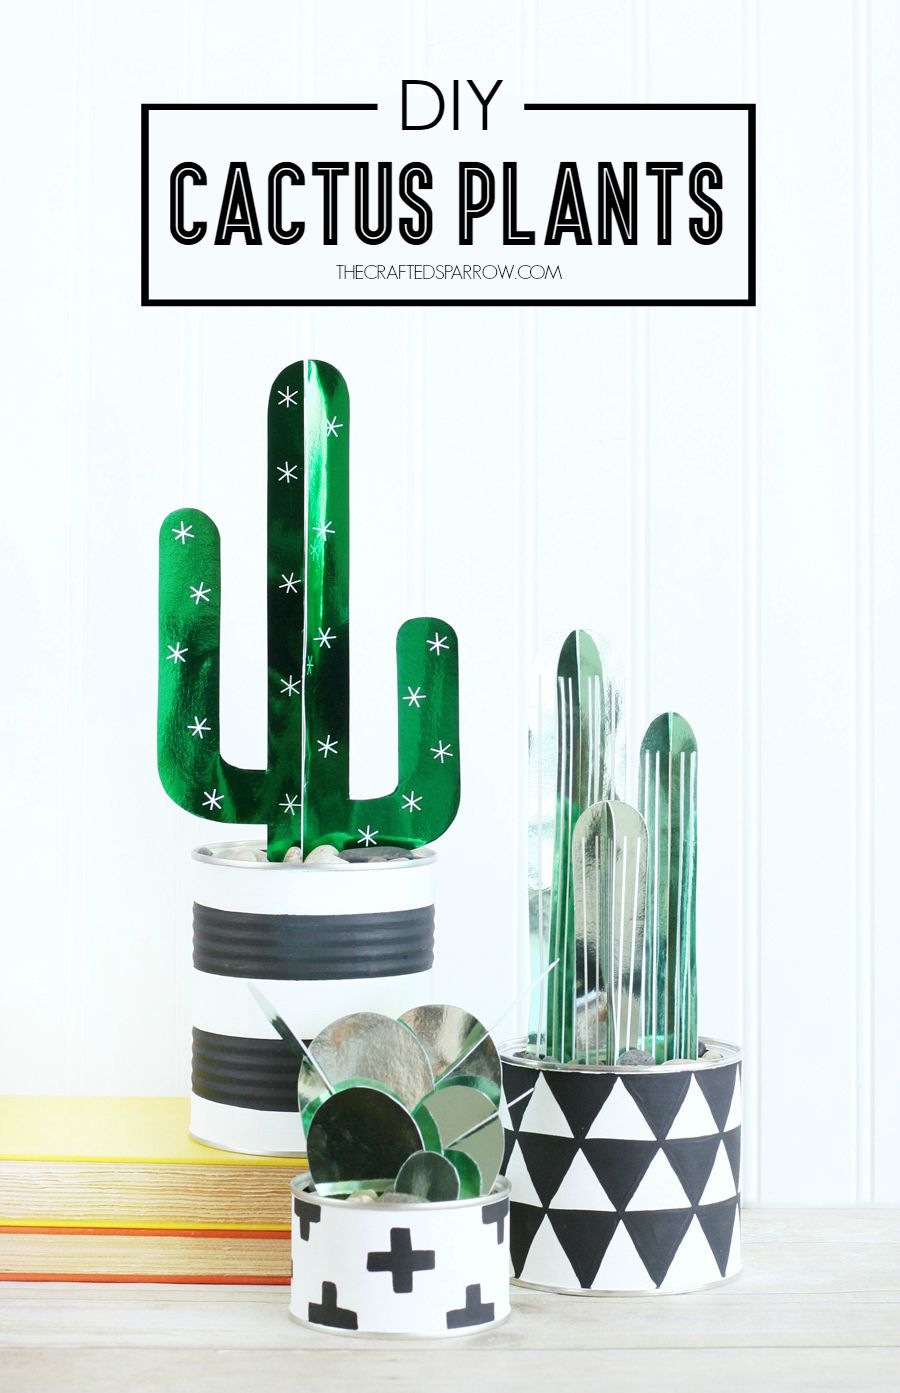 And because of the lack of natural light, some obviously fake & funky cacti. ( source )